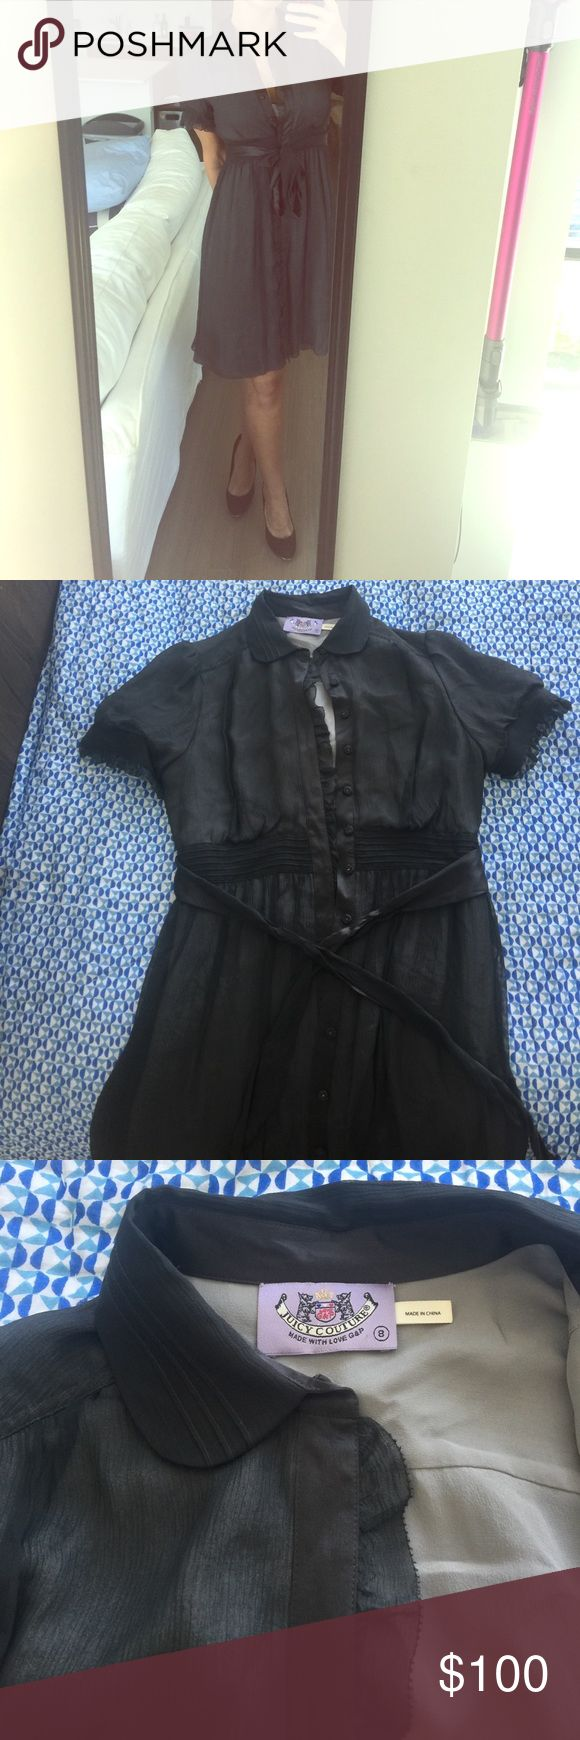 SALE! Juicy Couture 100% Silk Dress Size 8 I only wore this twice but it is sooo beautiful and appropriate for work as well as going out. Fits a 6 or 8 and FLOWS so beautifully. MOVING SALE! Juicy Couture Dresses Midi